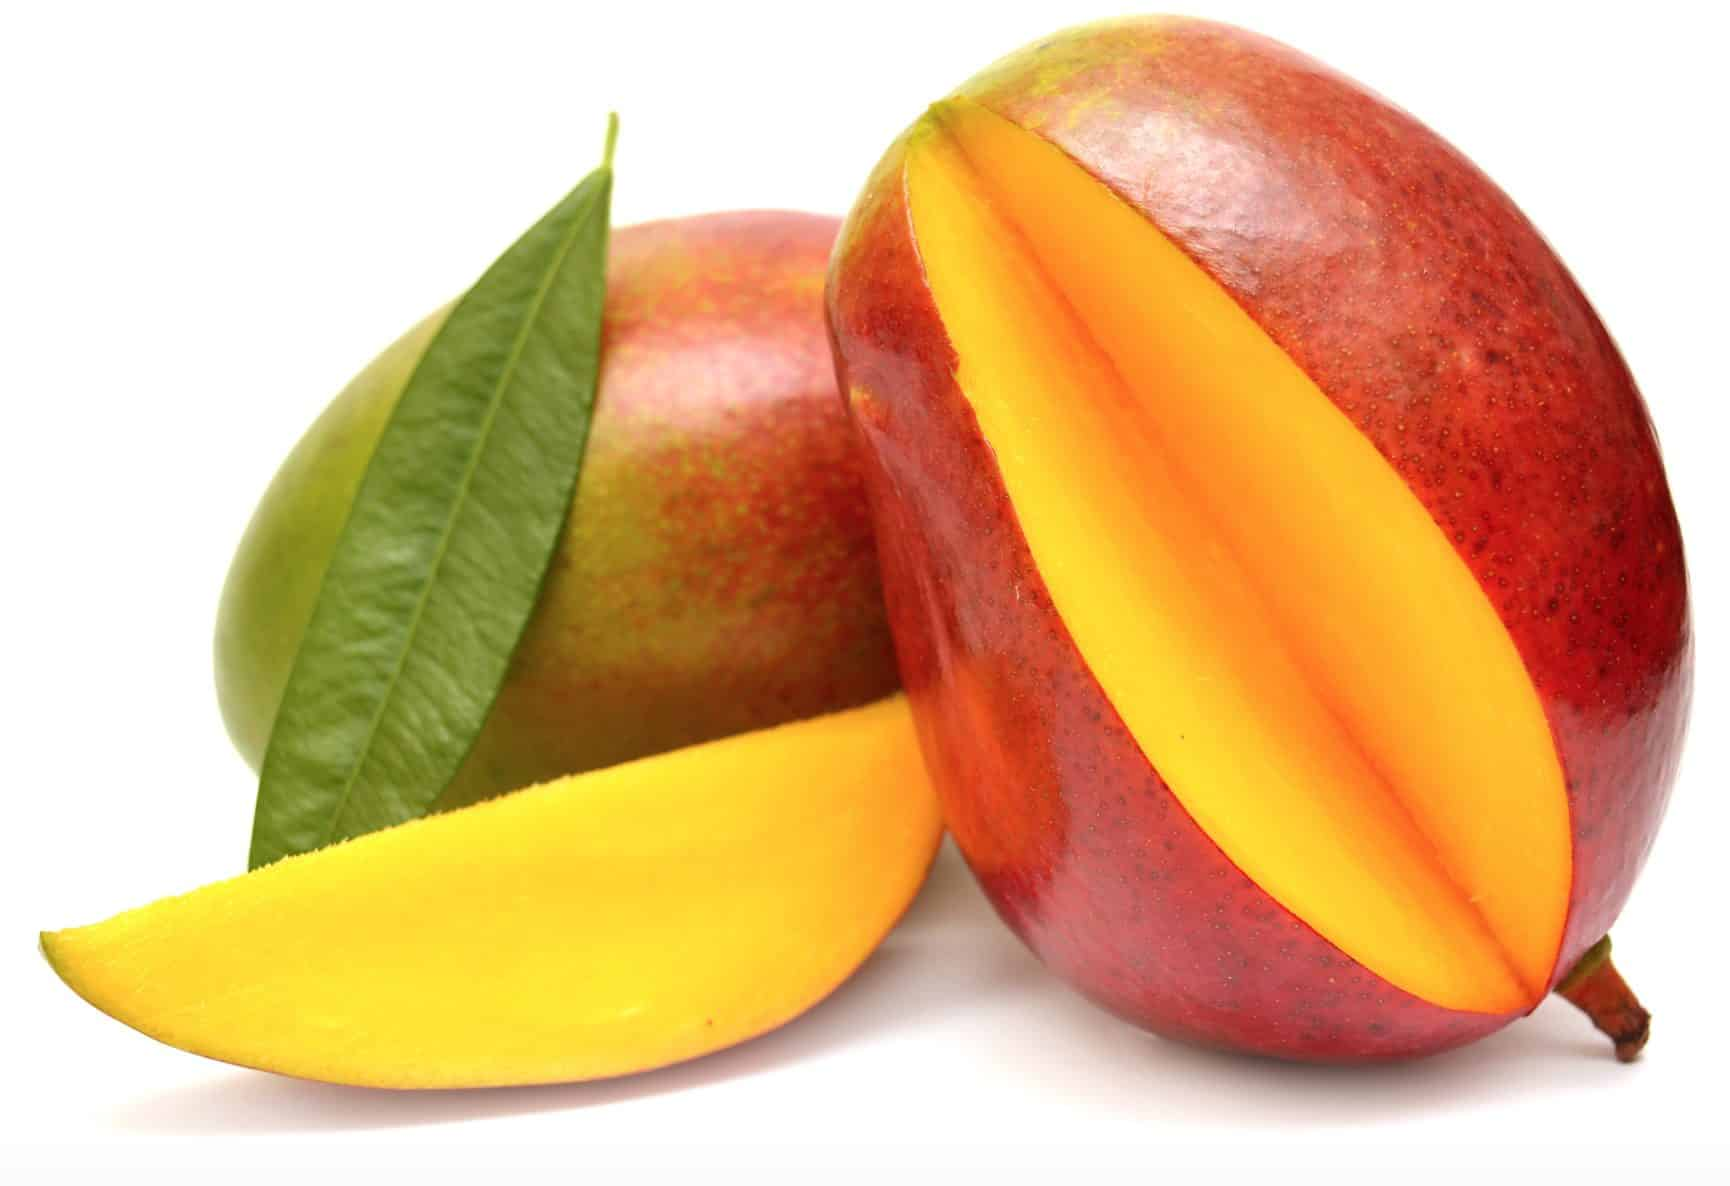 Mangoes are super dog foods that provide a plethora of health benefits for dogs.